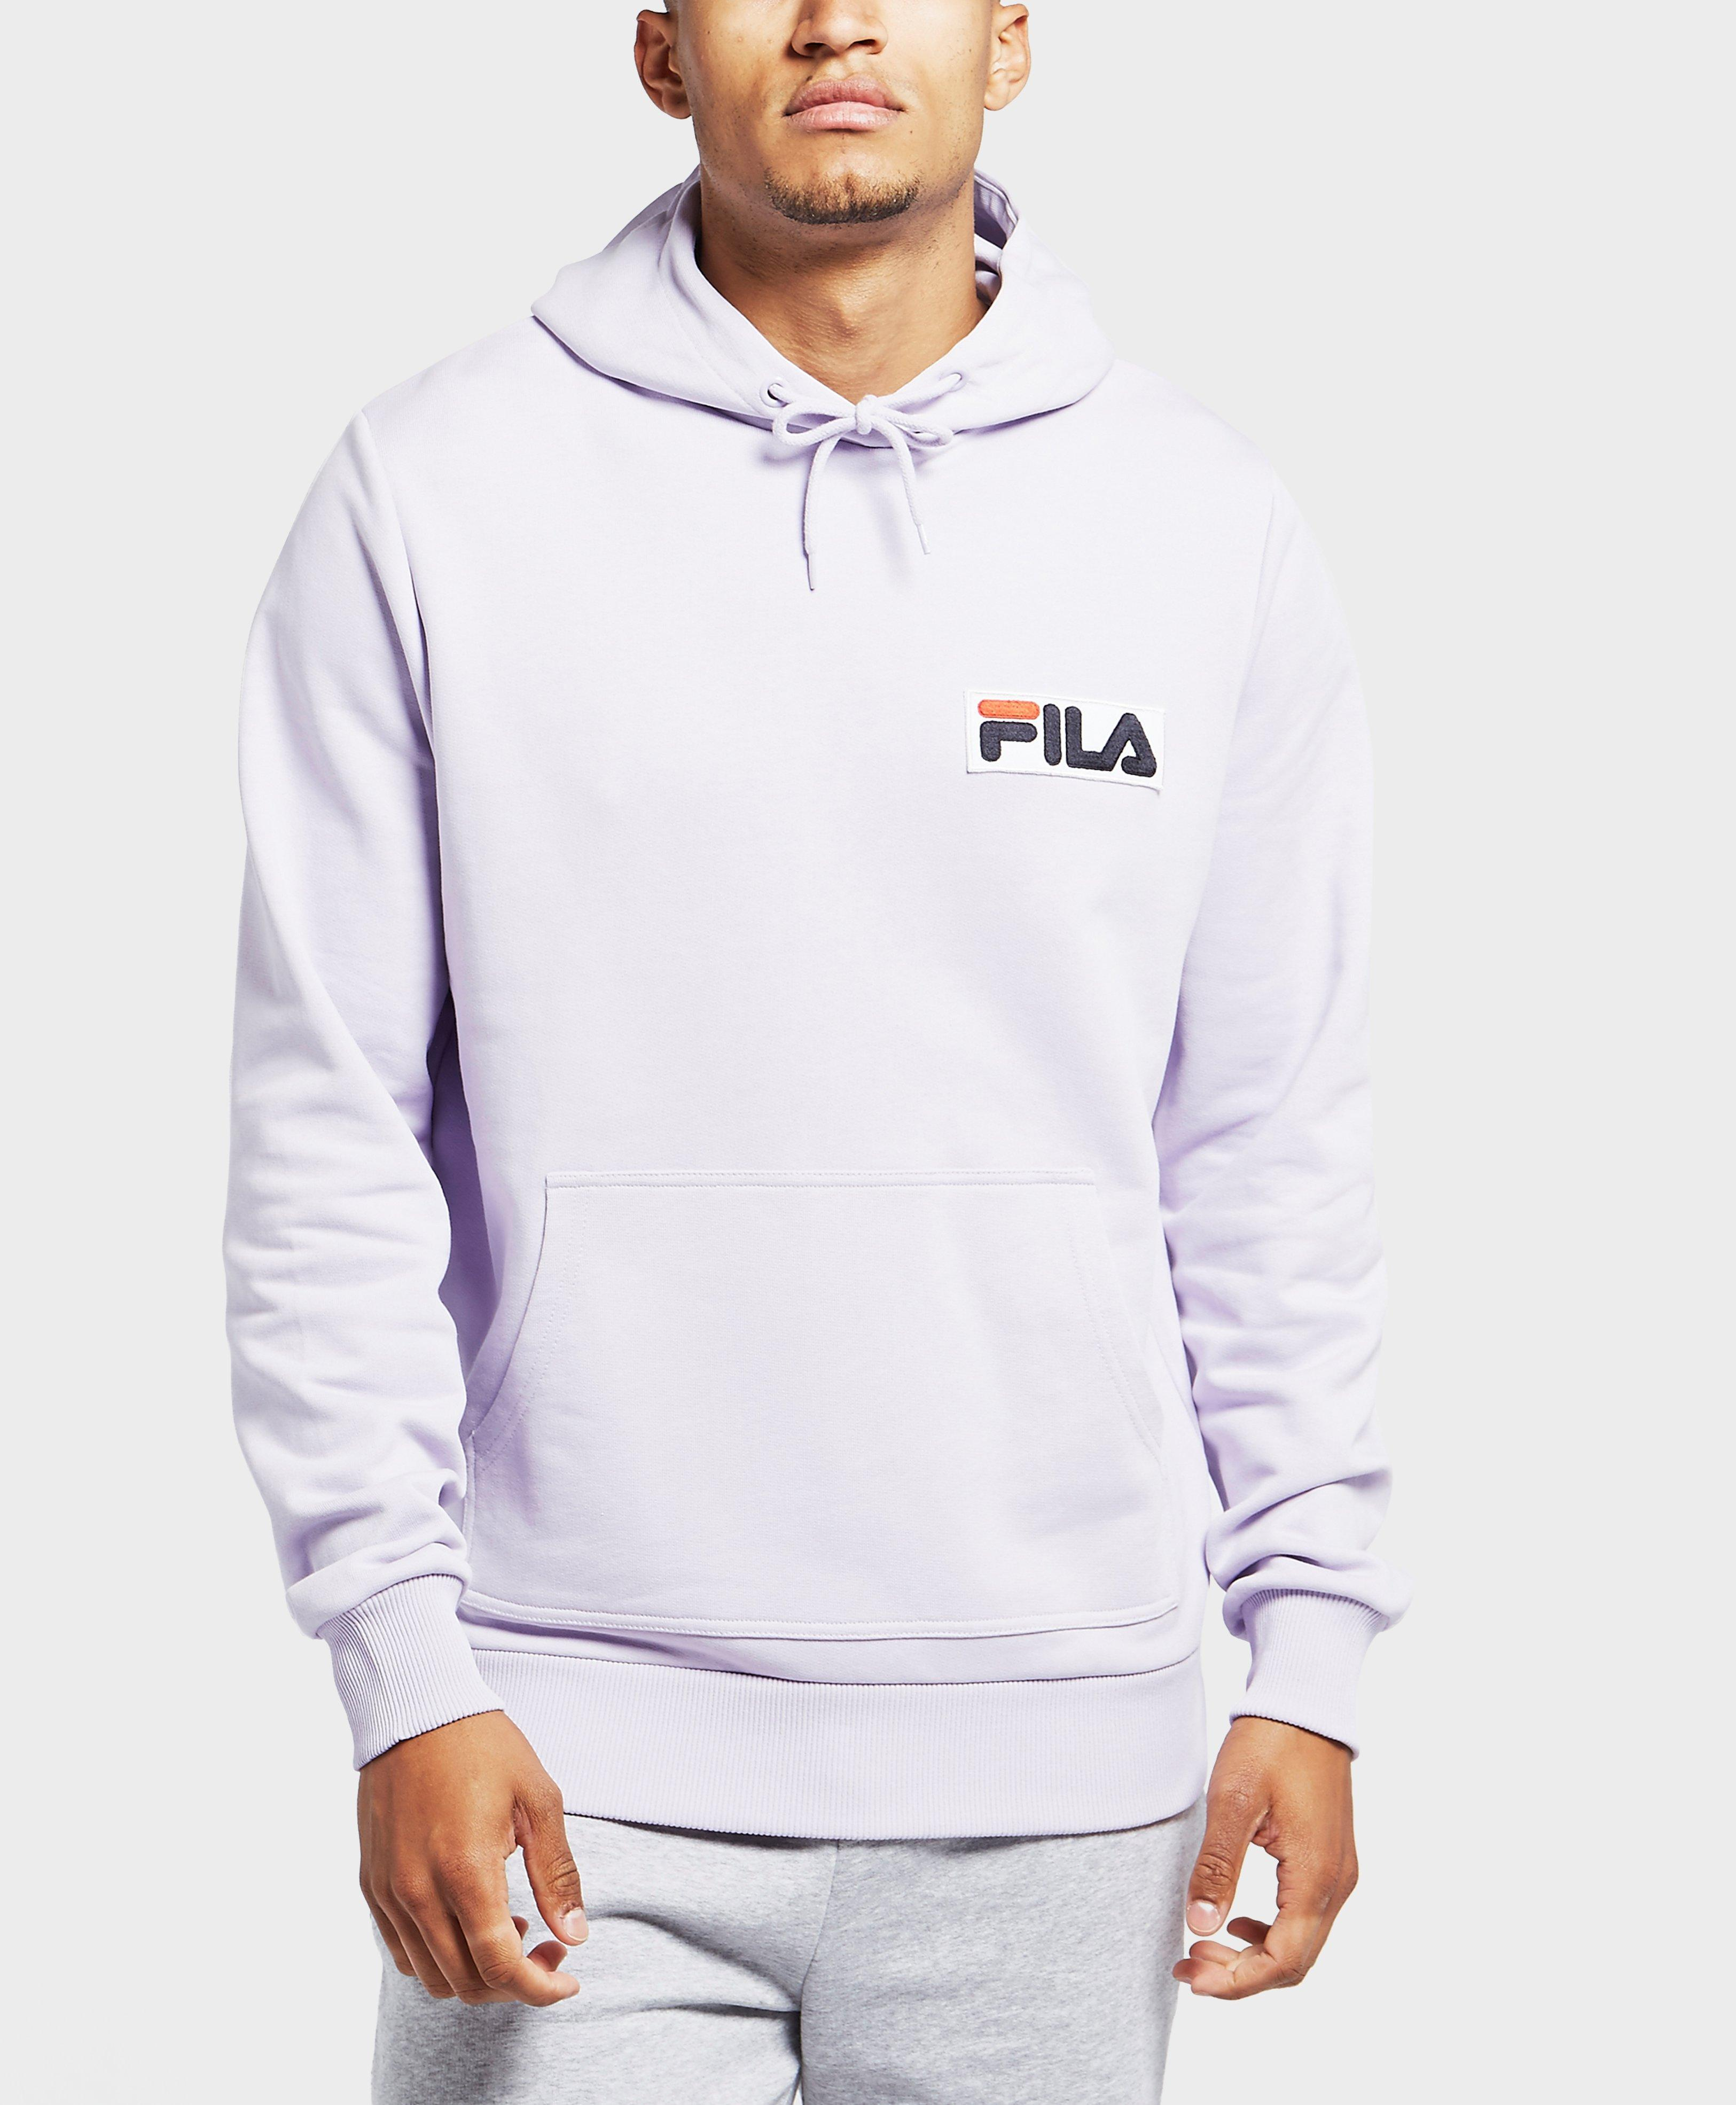 41f7b14d49c8 Fila Rupe Overhead Hoodie - Exclusive in White for Men - Lyst